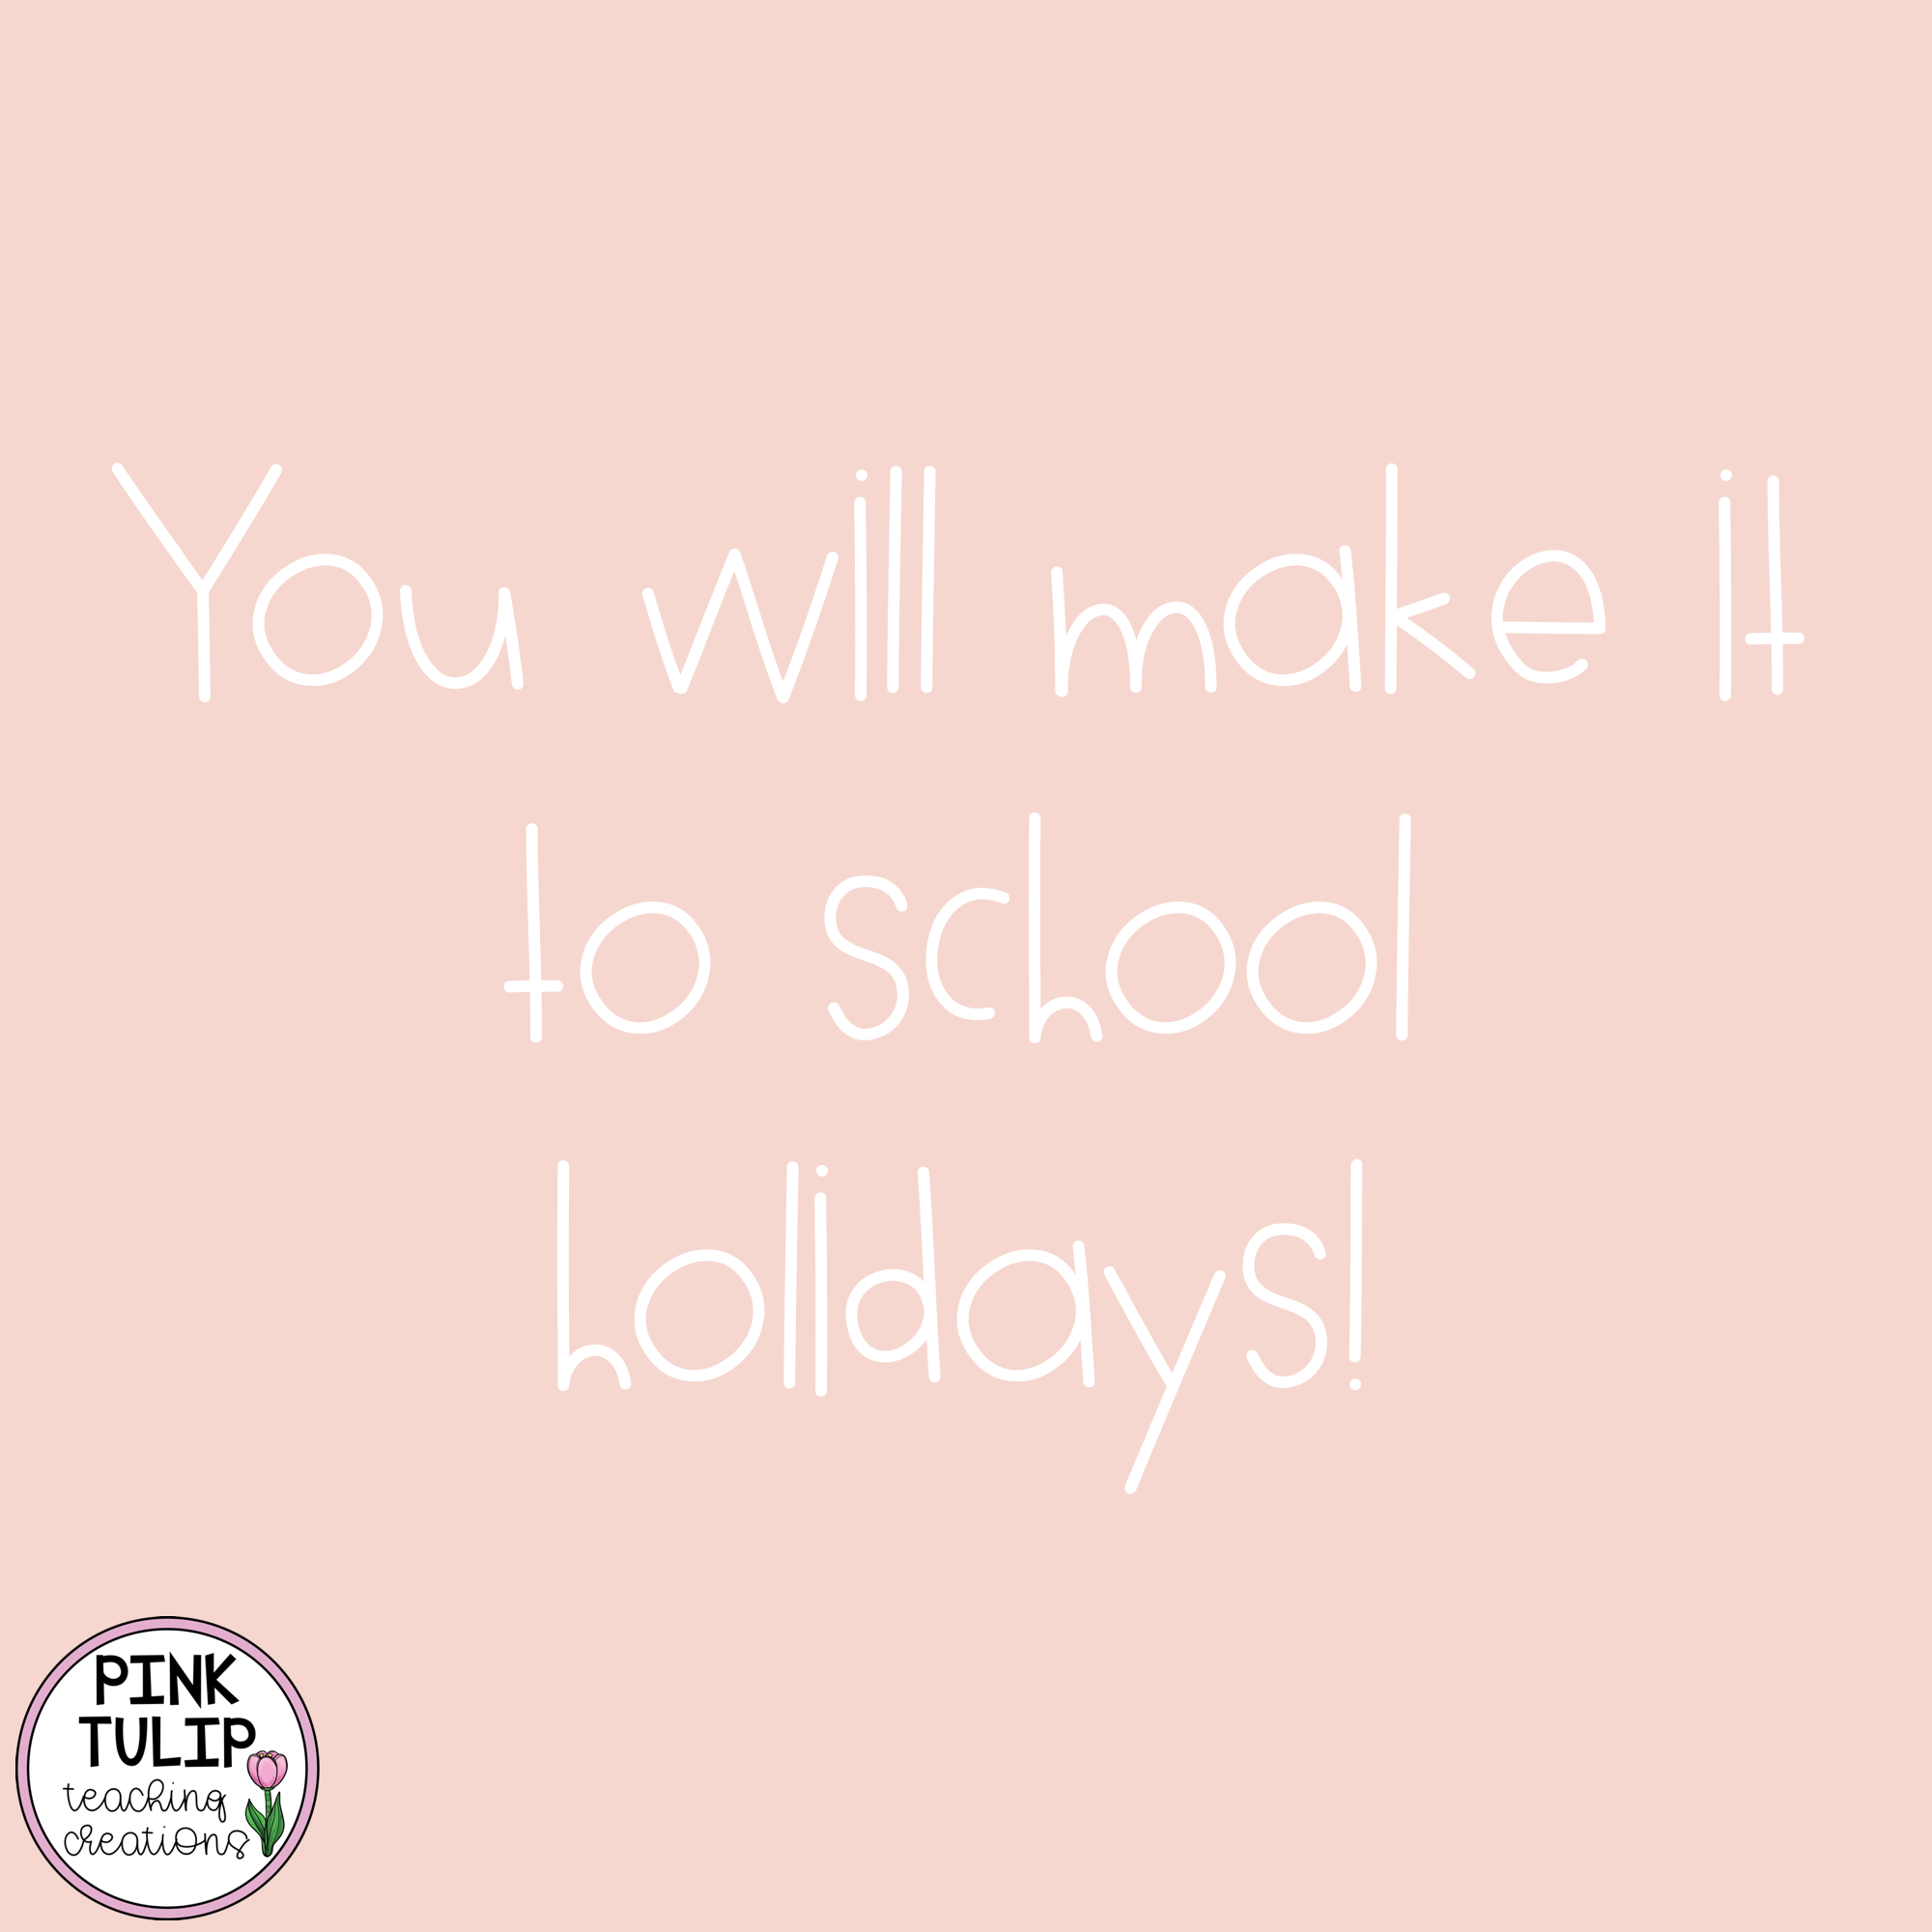 You Will Make It To School Holidays Quote